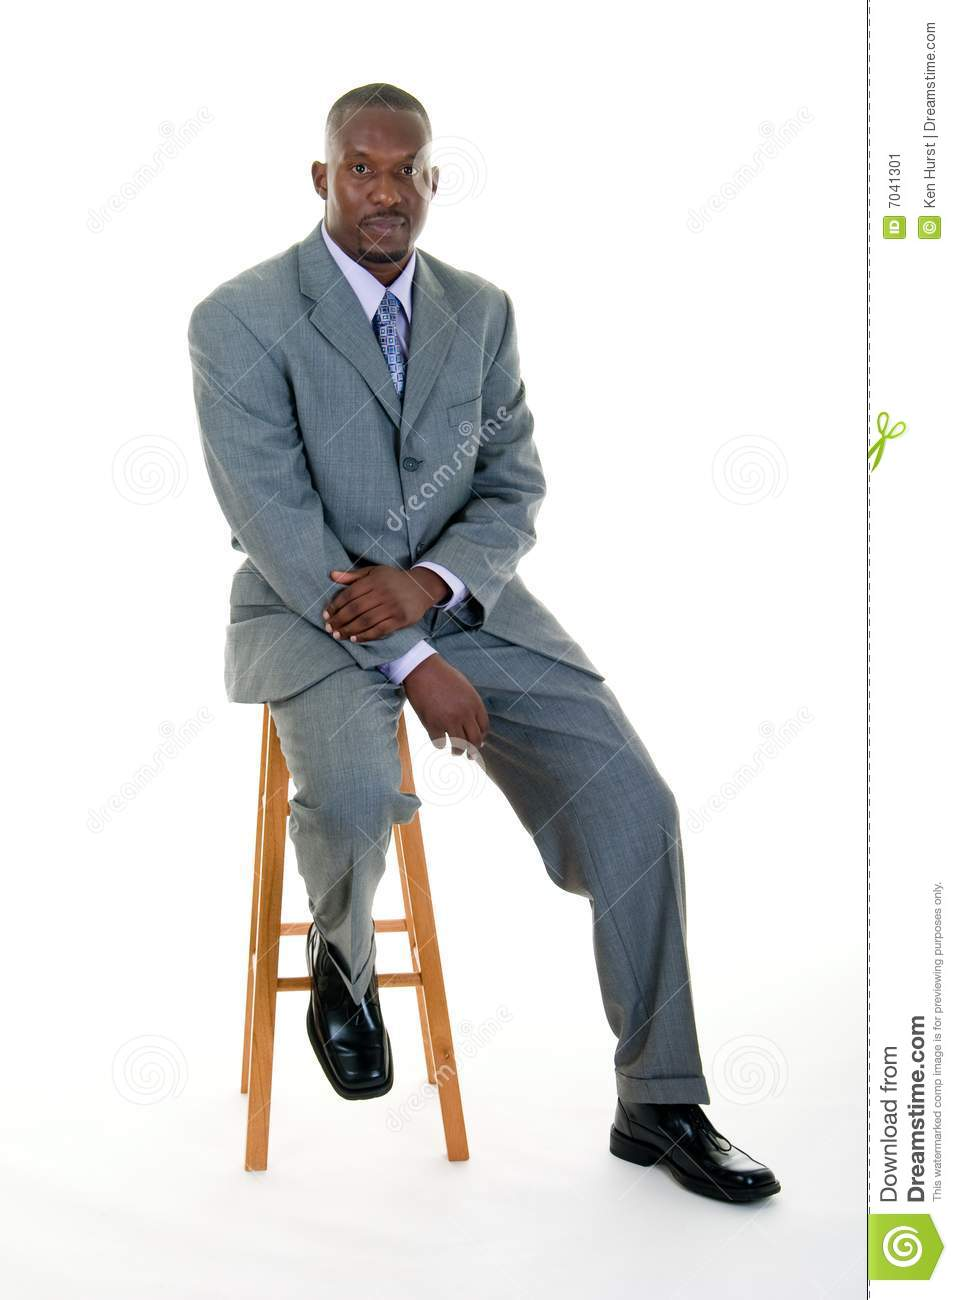 business-man-sitting-stool-7041301.jpg